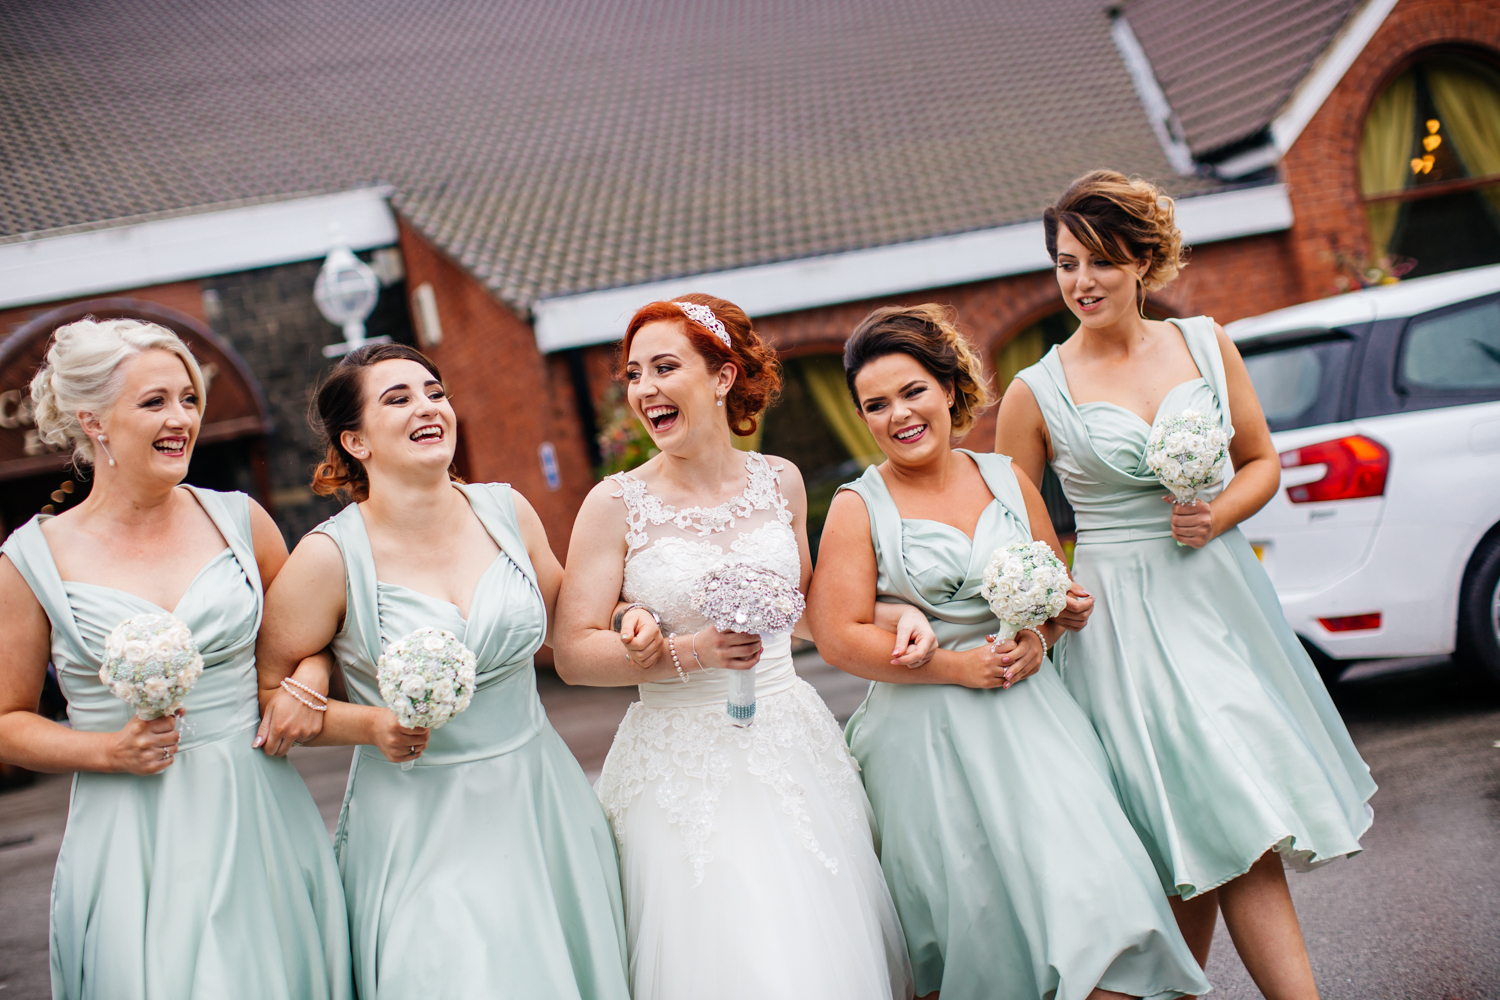 wedding photographers in sheffield61.jpg